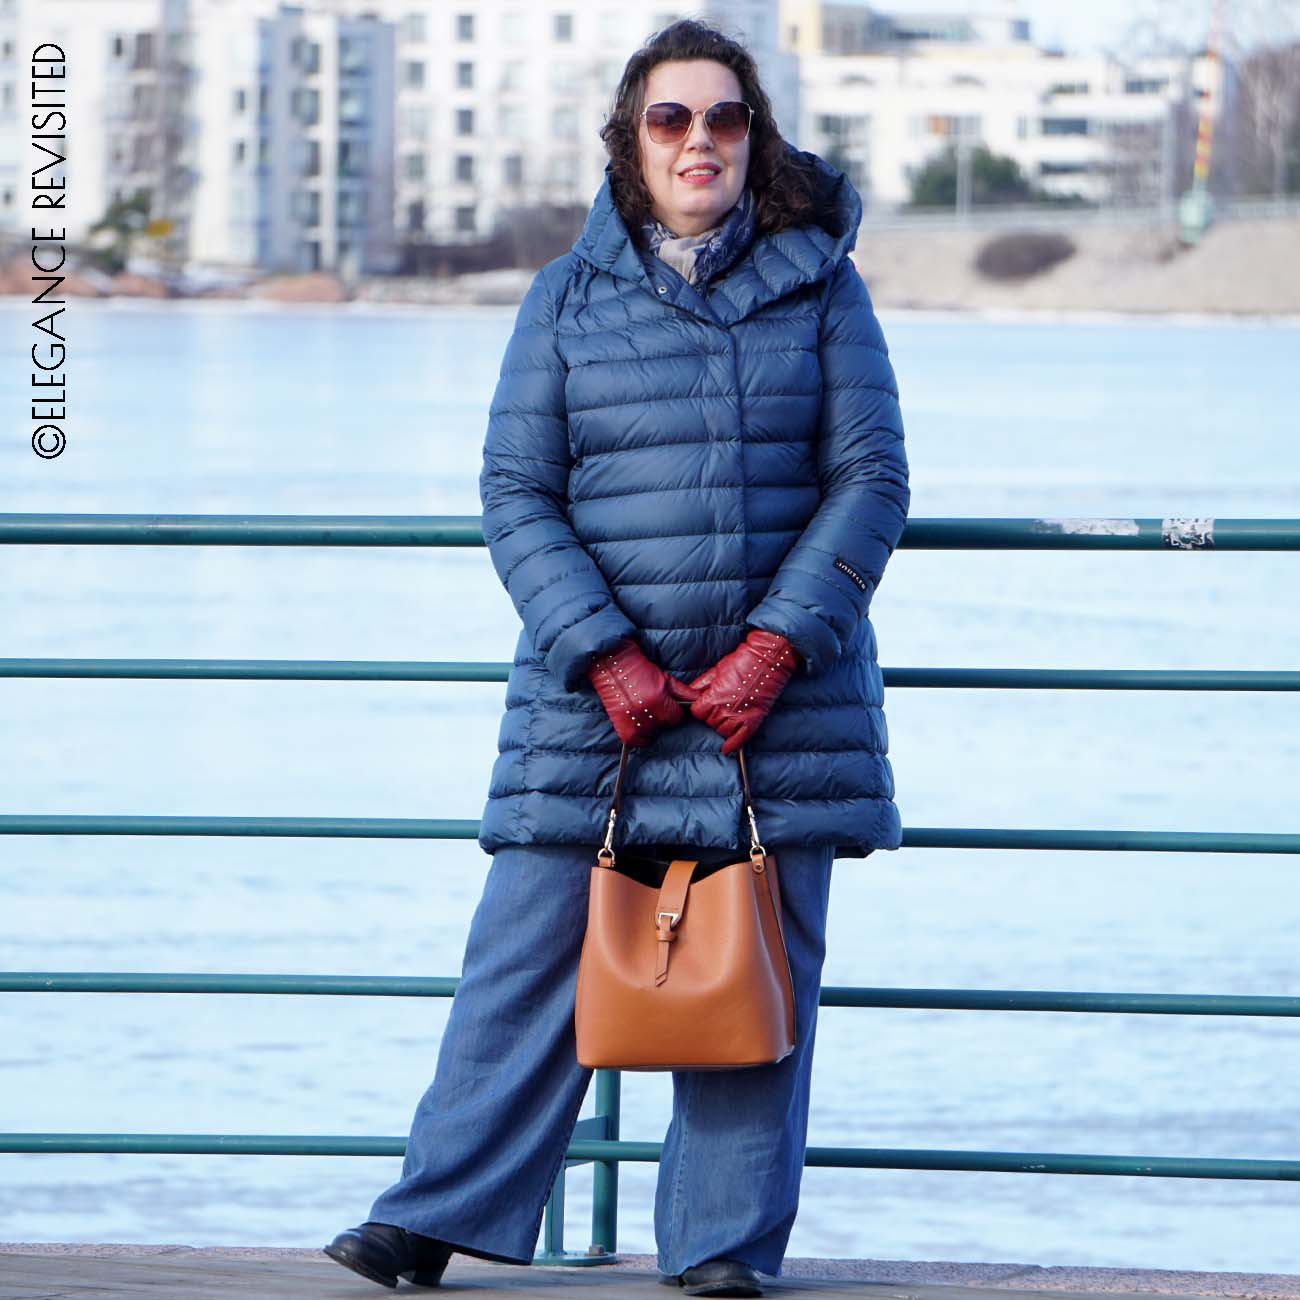 casual spring wear over 50